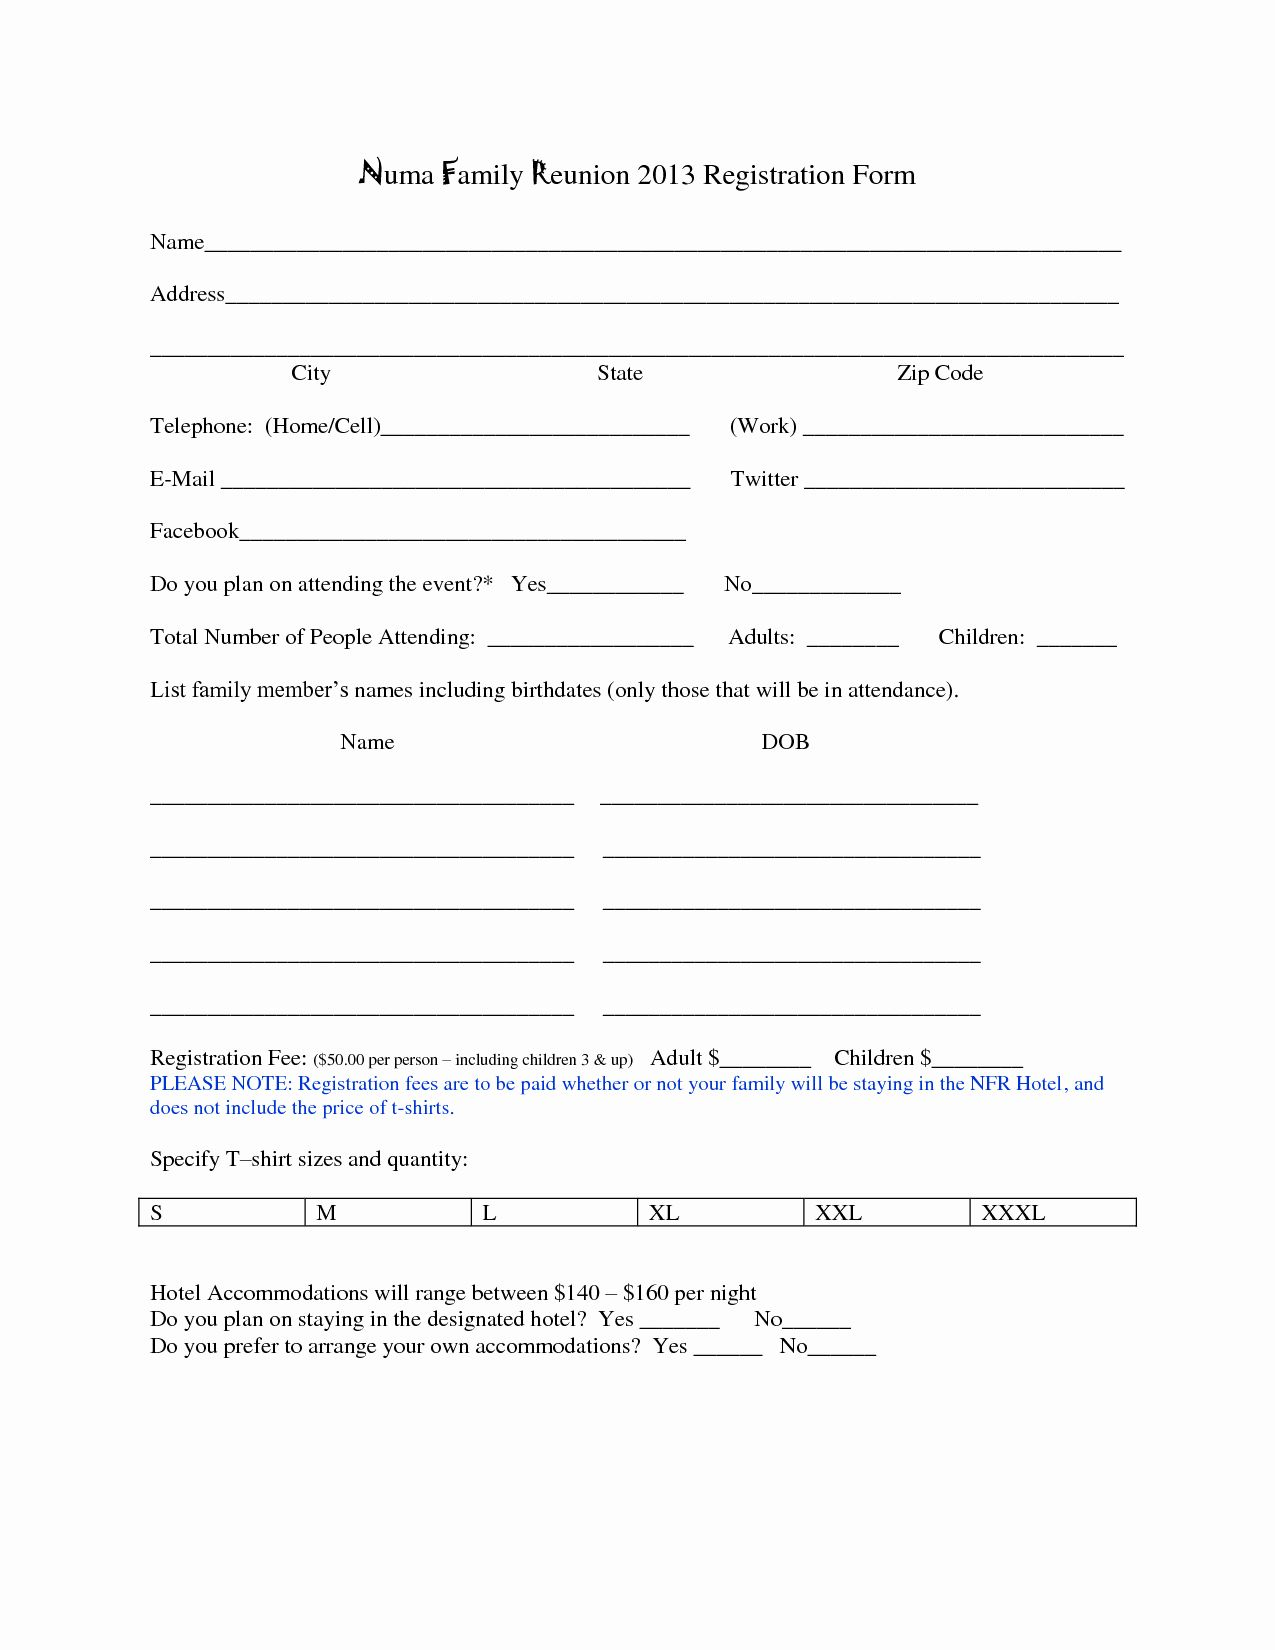 Blank Registration Form Template Best Of Family Reunion